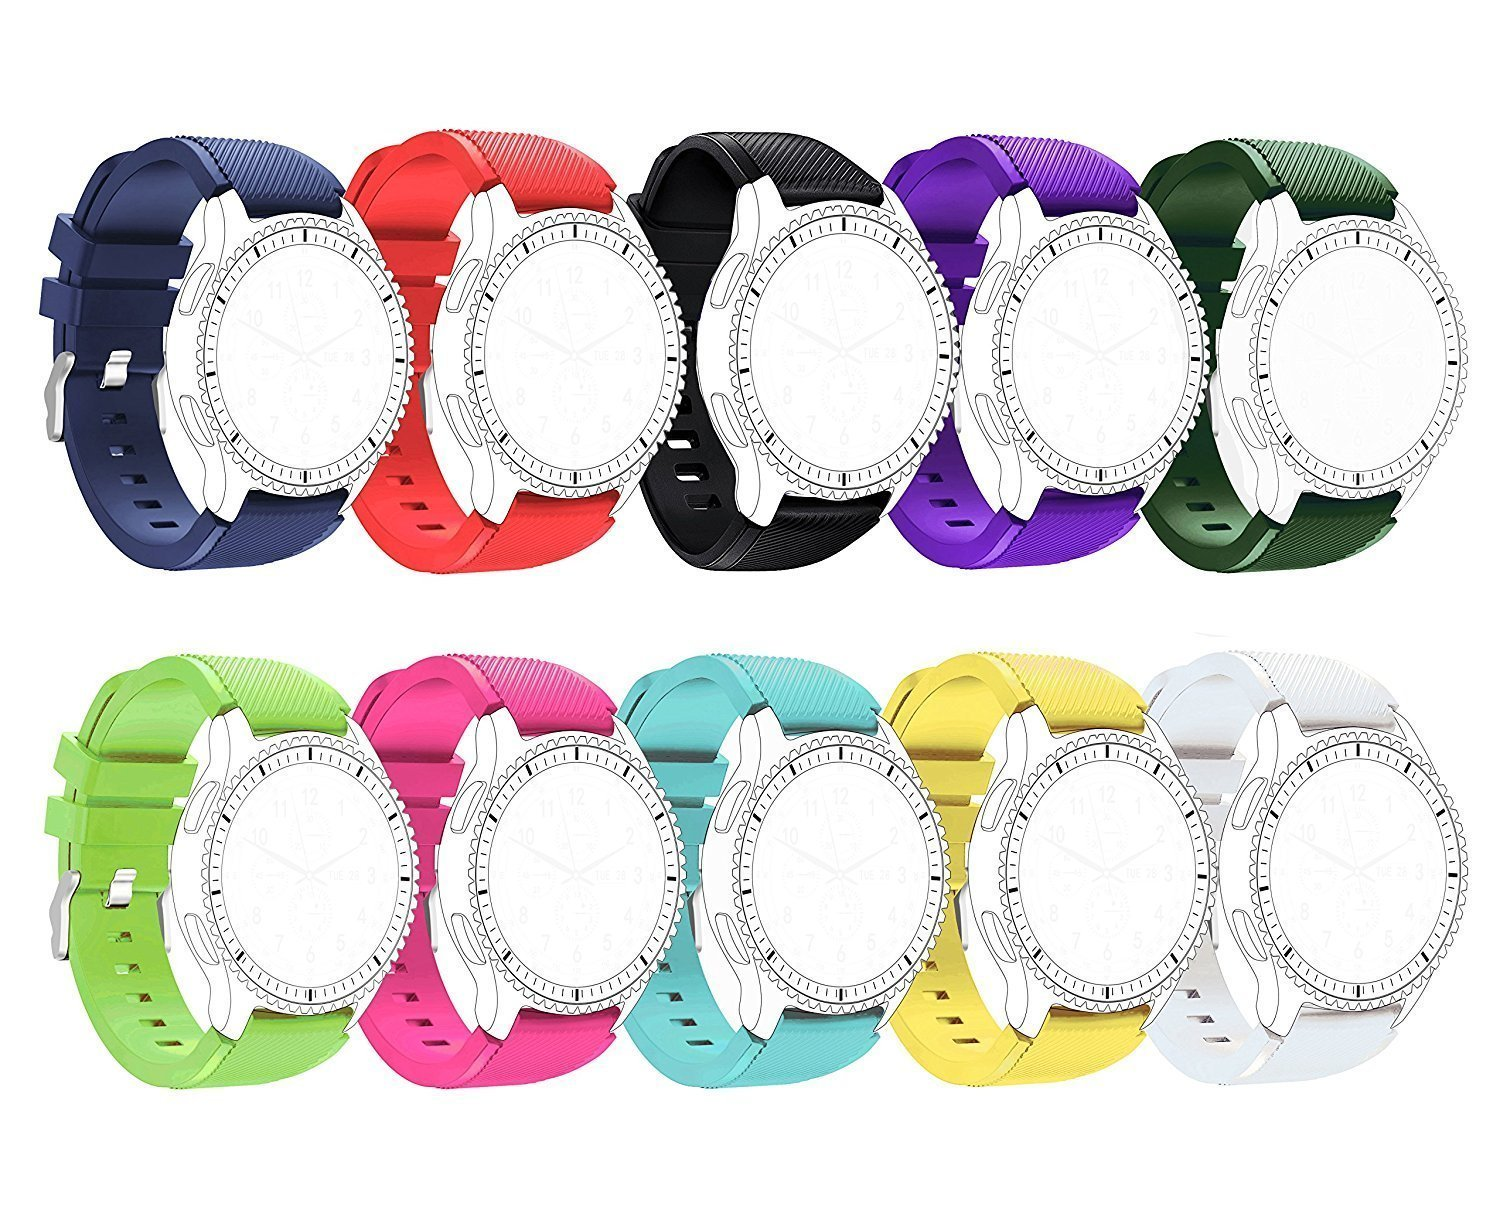 Replacement Silicone Bands for Samsung Gear S3 Frontier/Gear S3 Classic/ Galaxy Watch (46mm) SM-R800/ Moto 360 2 46mm Smartwatch Soft Sport Bracelet Strap for Samsung Gear S3 Watch (10pcs) (22mm)